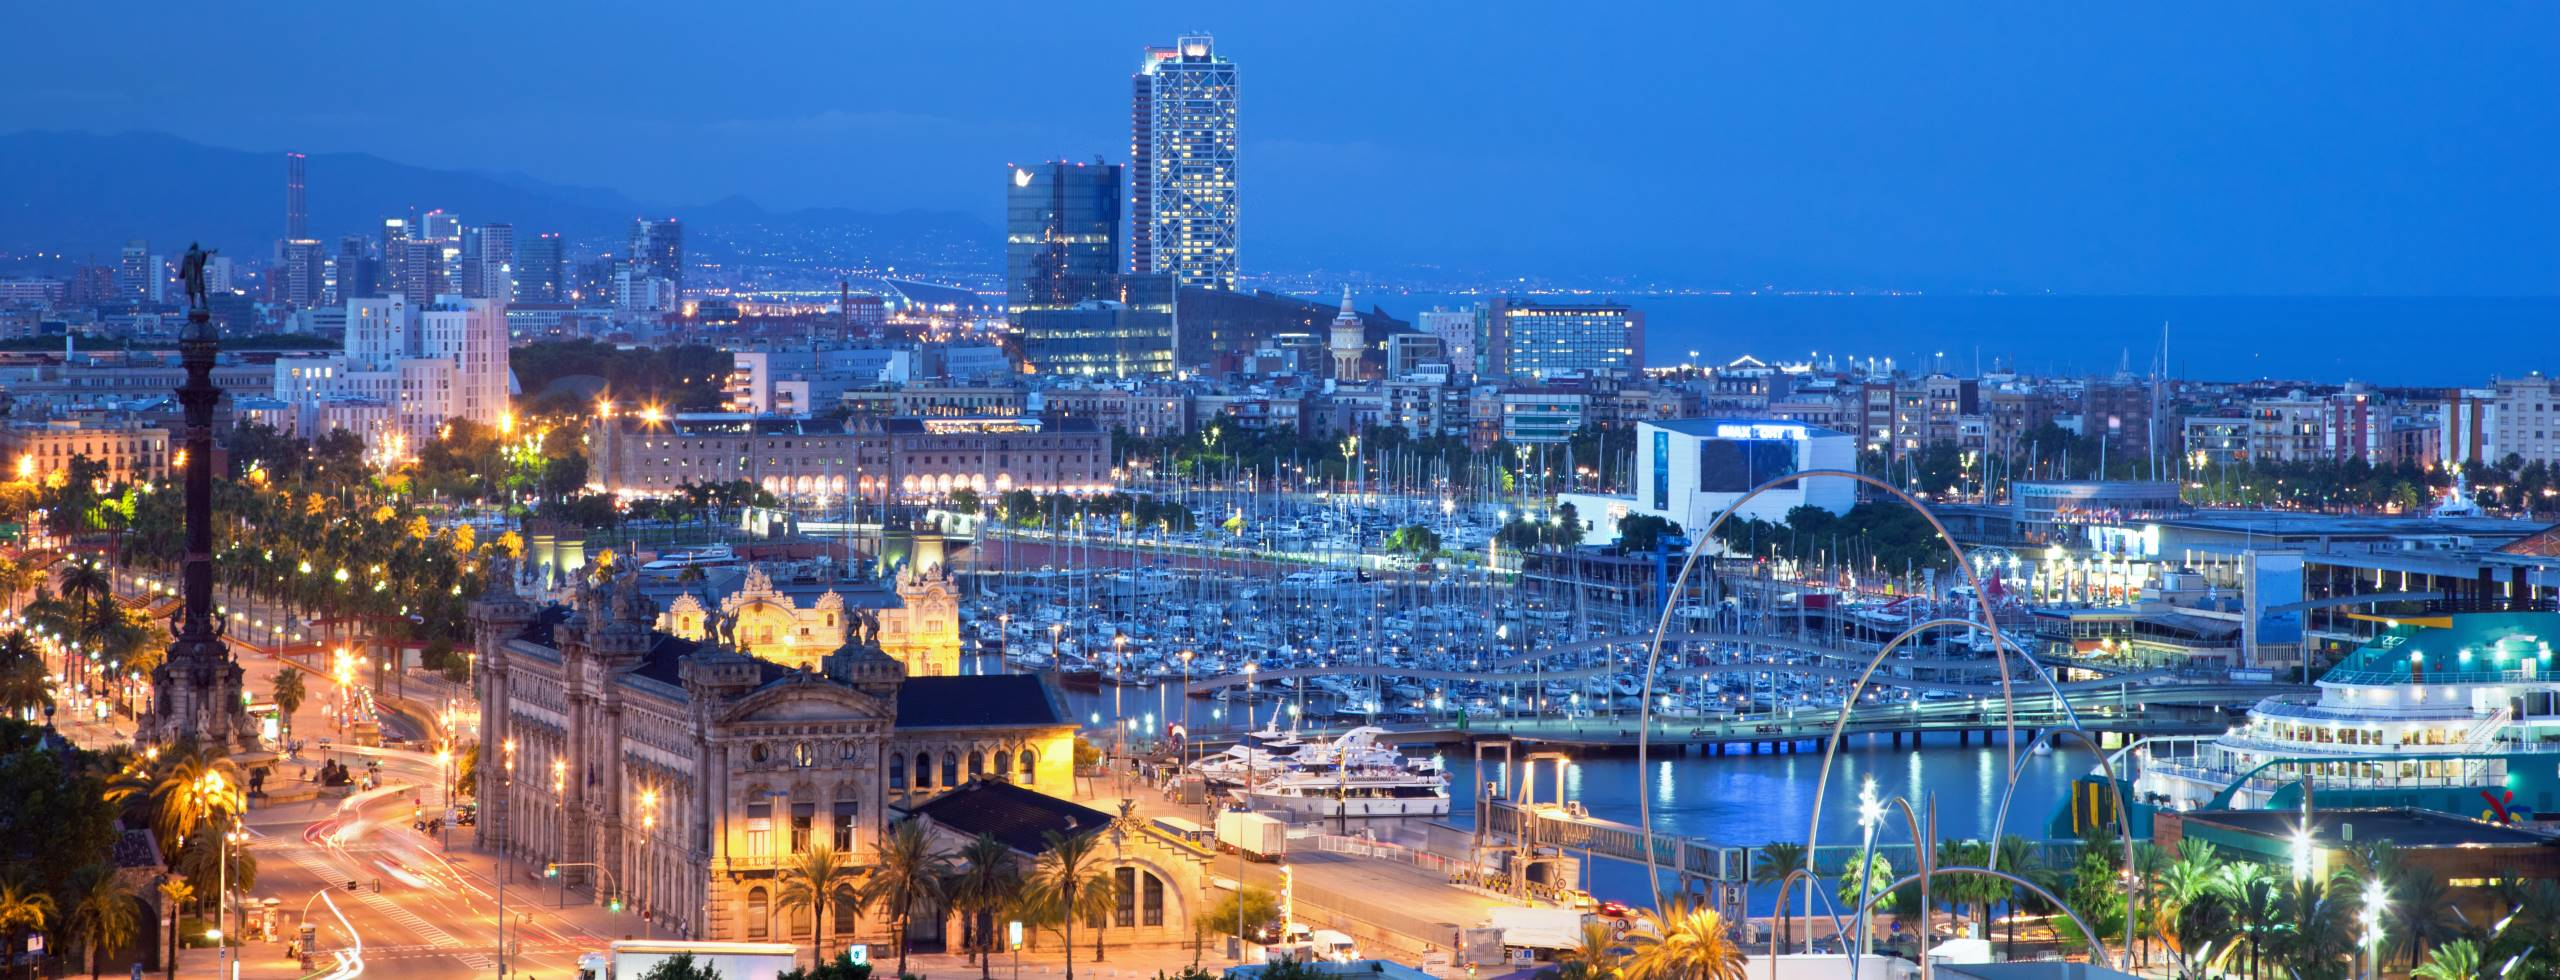 Barcelona Vacation Packages Tours Honeymoon Travel Barcelona - Spain vacation